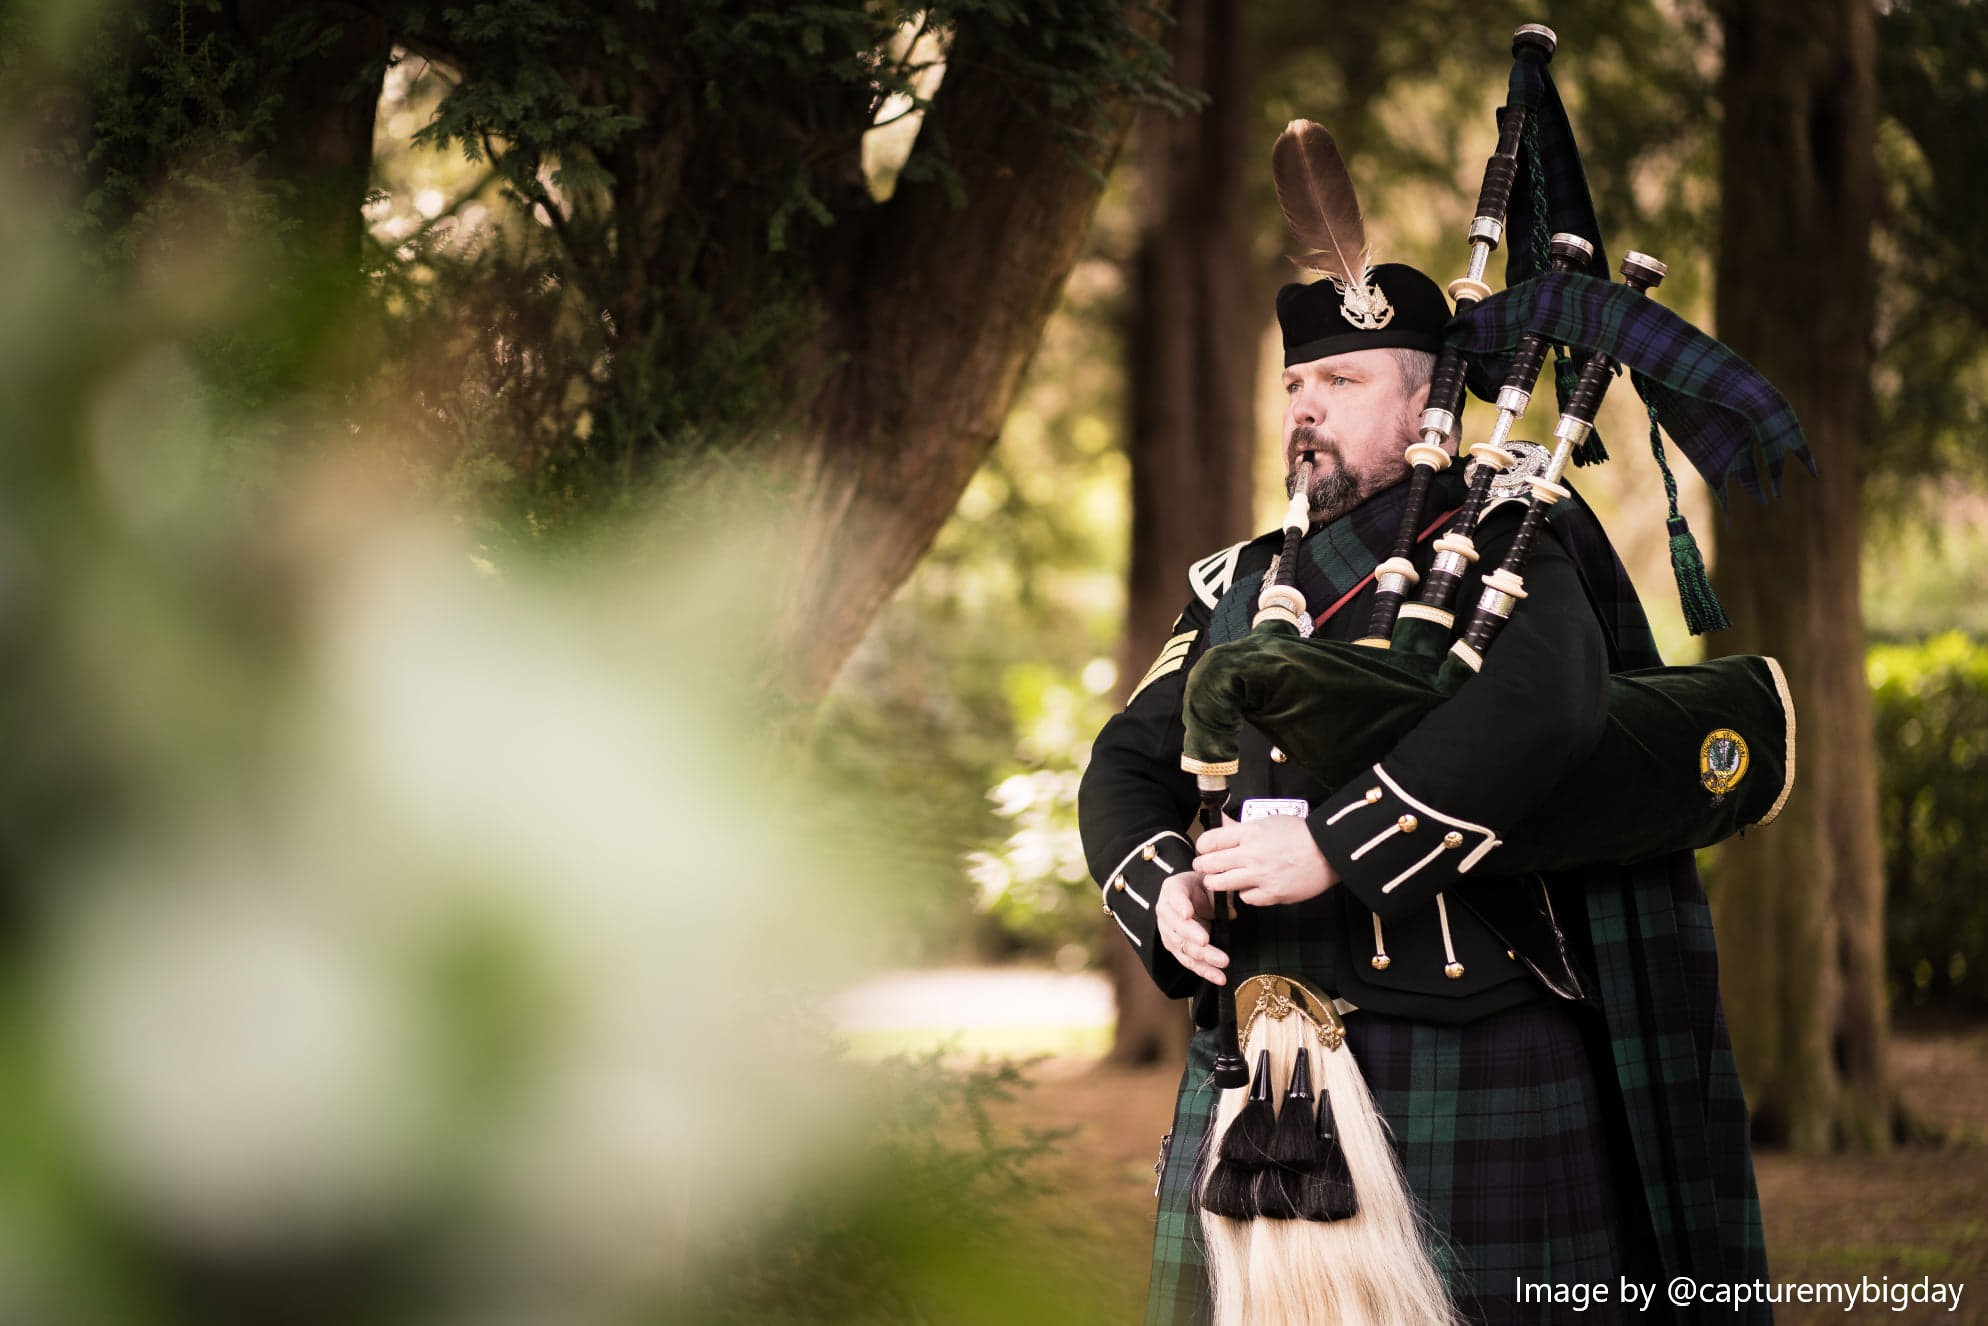 #3996 - Pipe Band, Piper